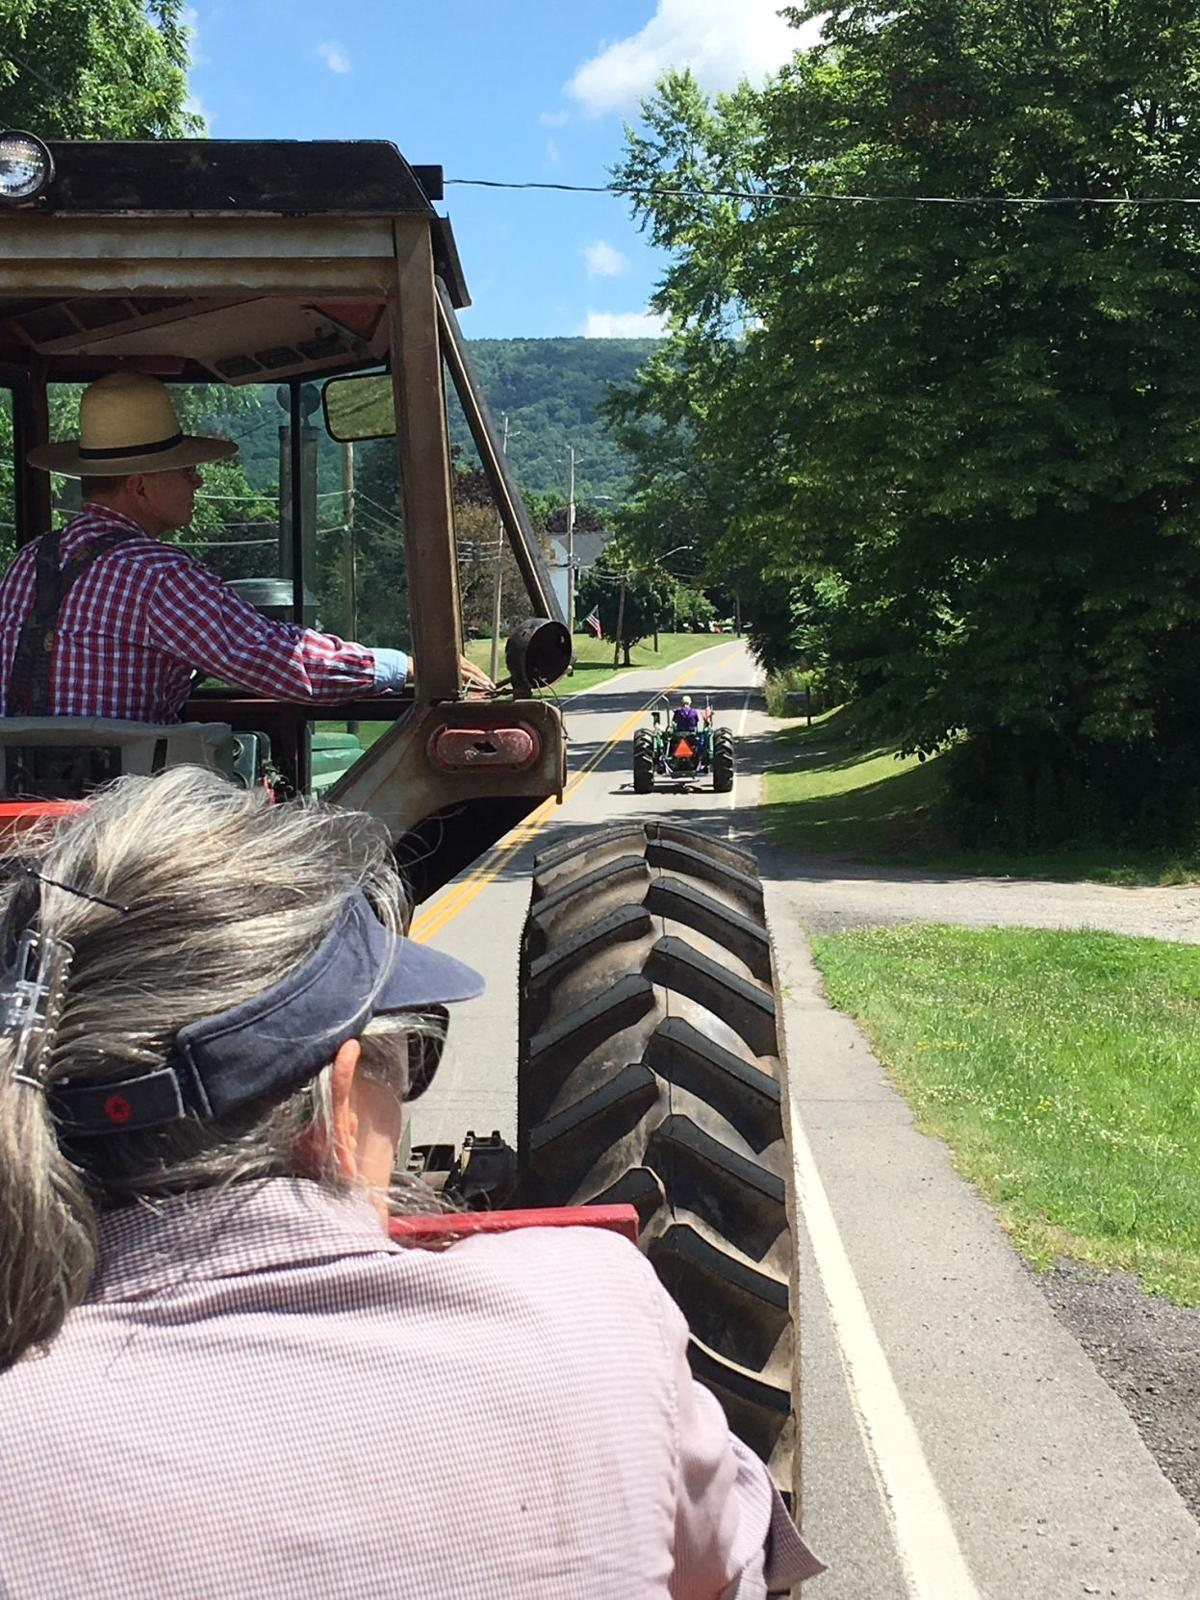 Alan Howe and Guests follow Paul on his tractor!